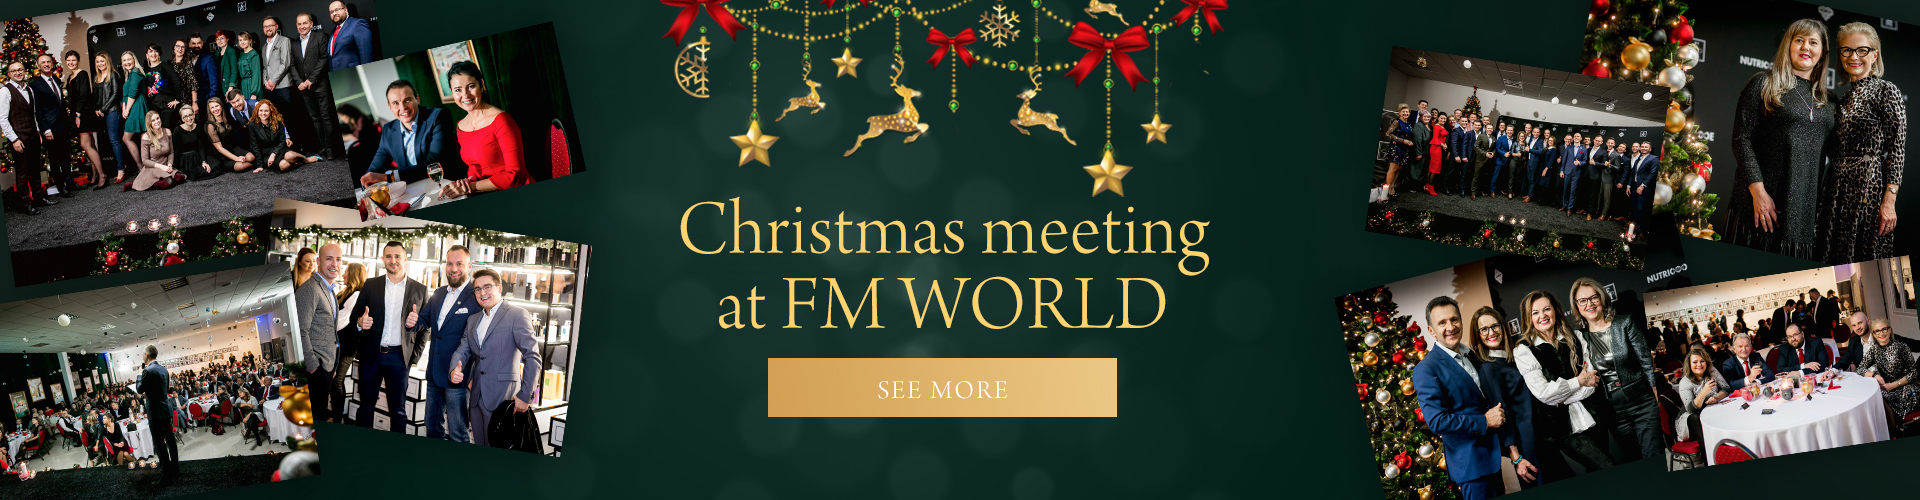 Christmas meeting at FM WORLD